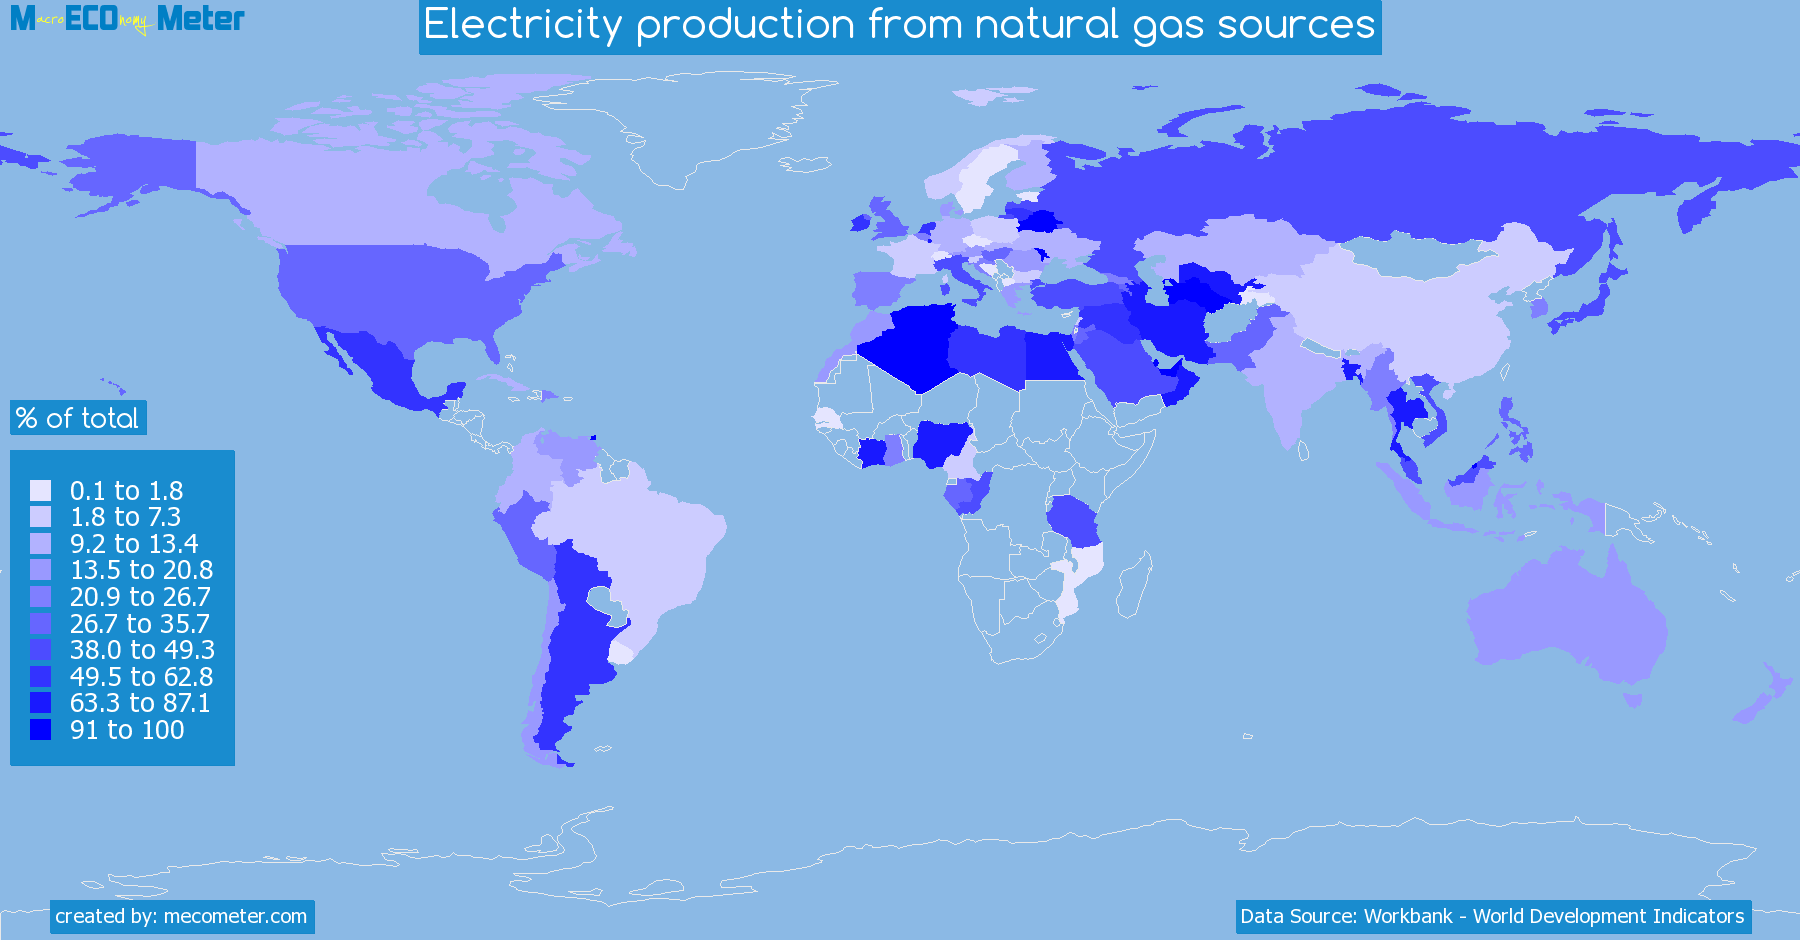 Worldmap of all countries colored to reflect the values of Electricity production from natural gas sources